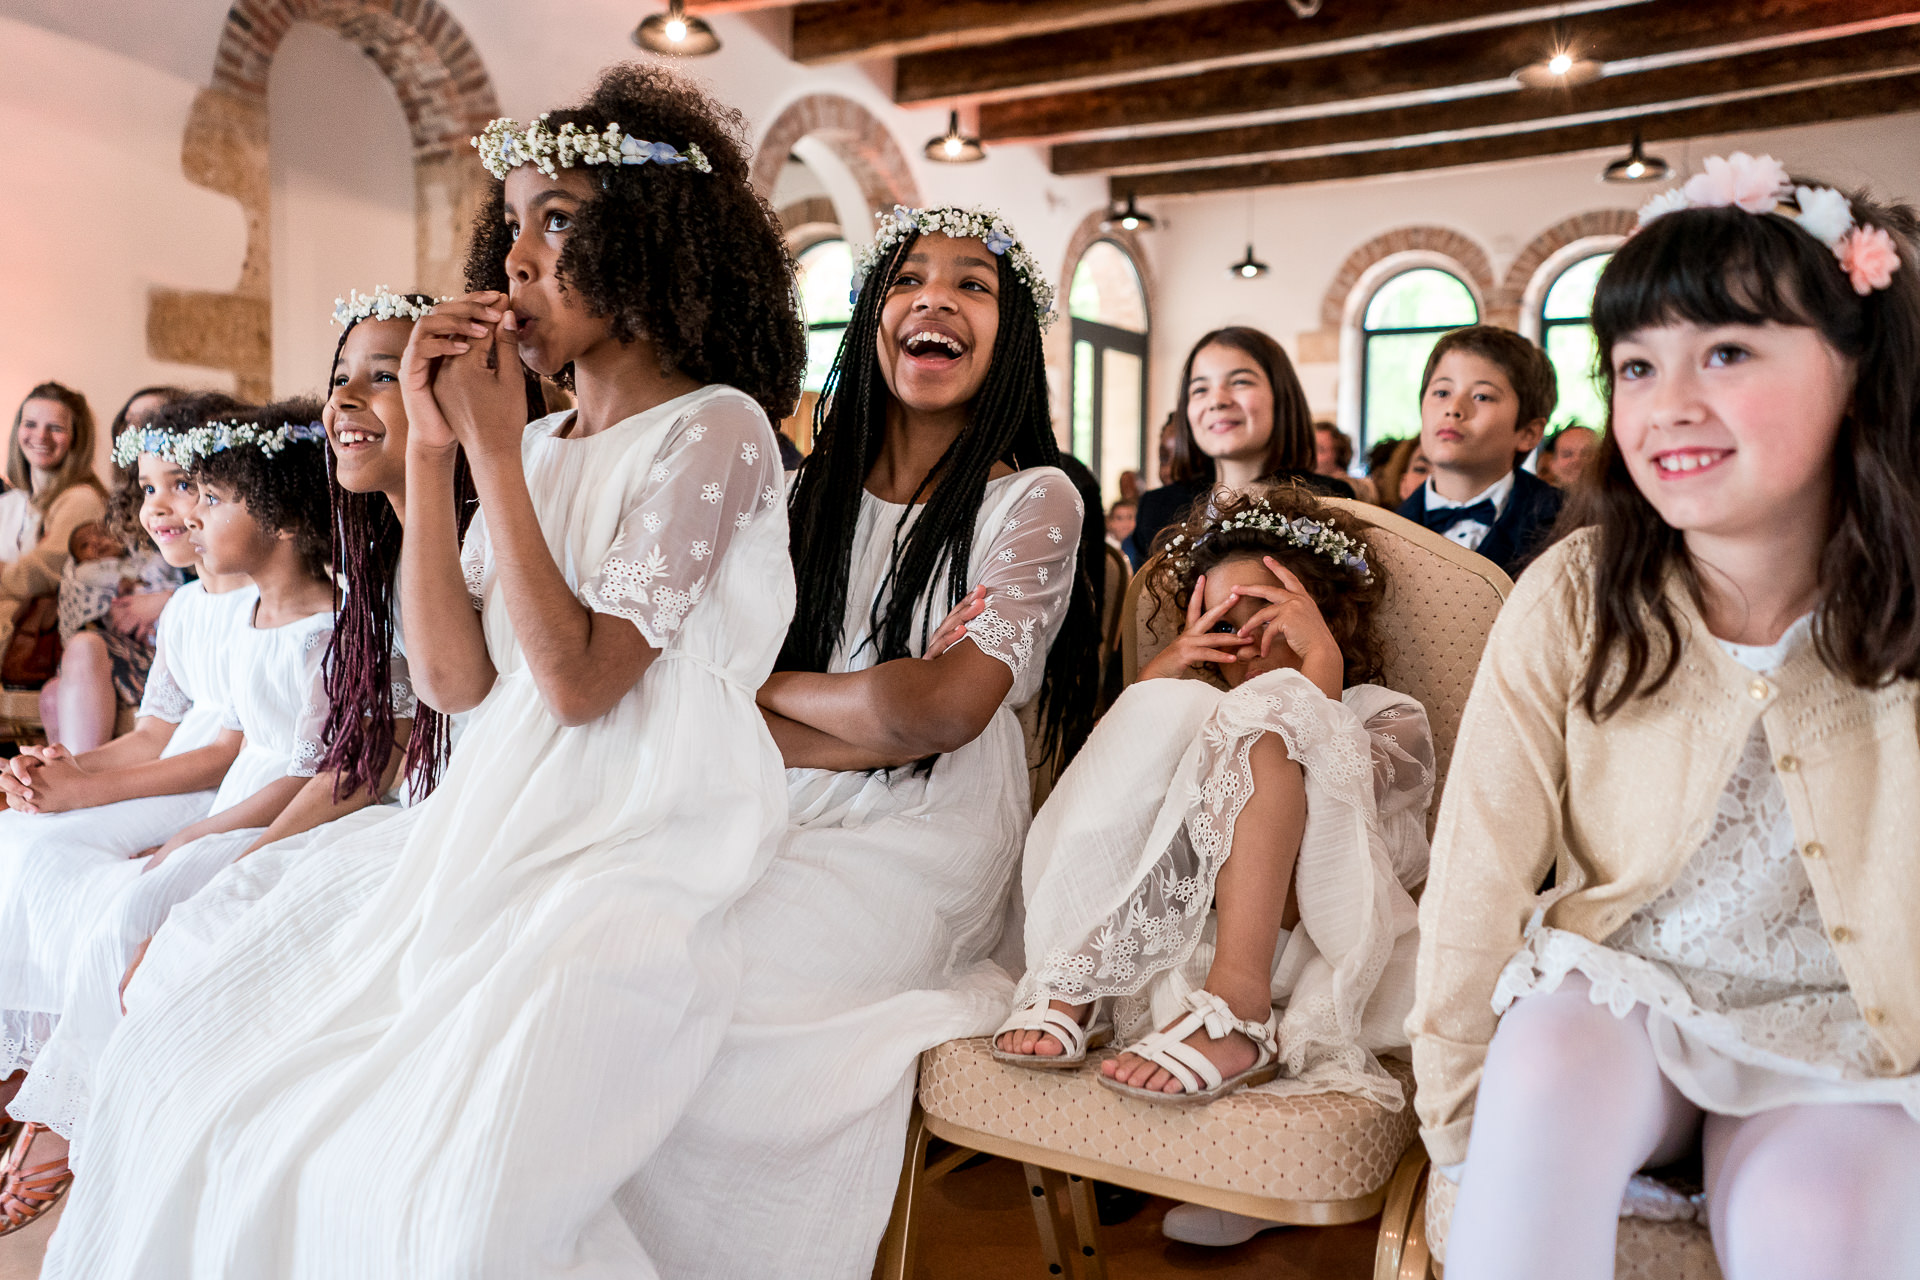 Wedding photography of girls in dresses laughing during ceremony